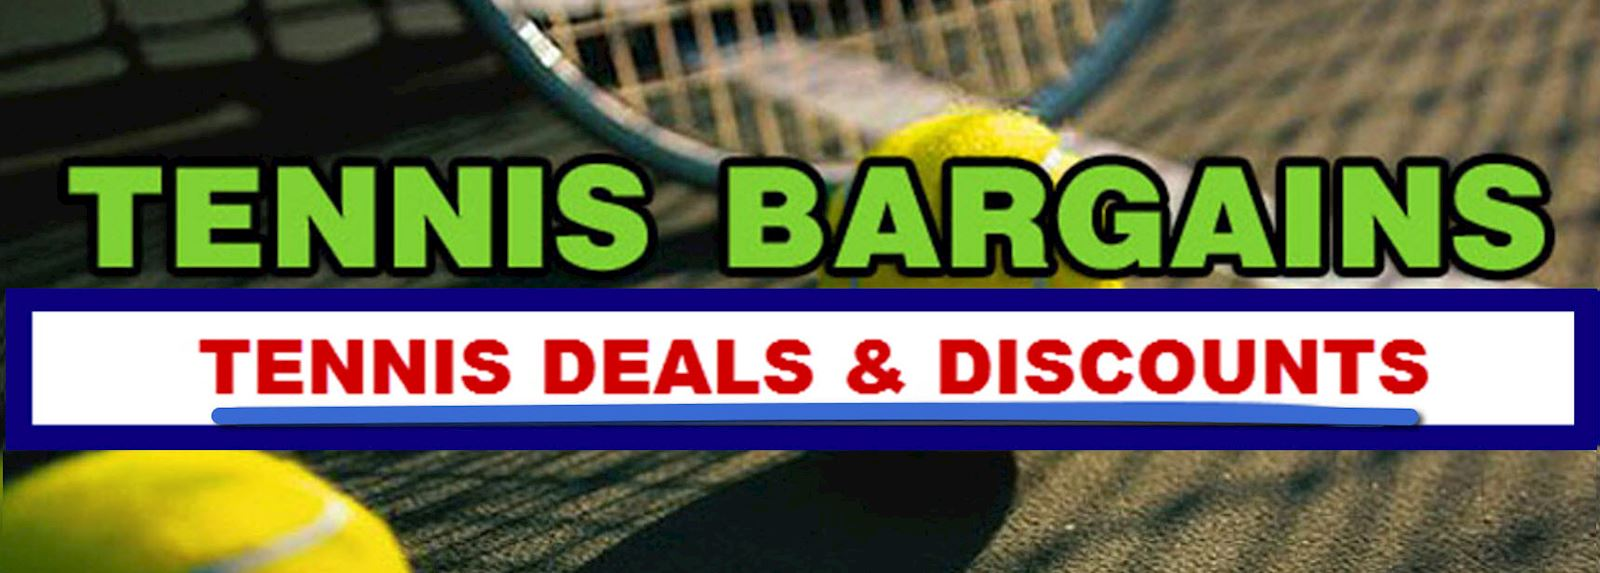 Tennis Bargains